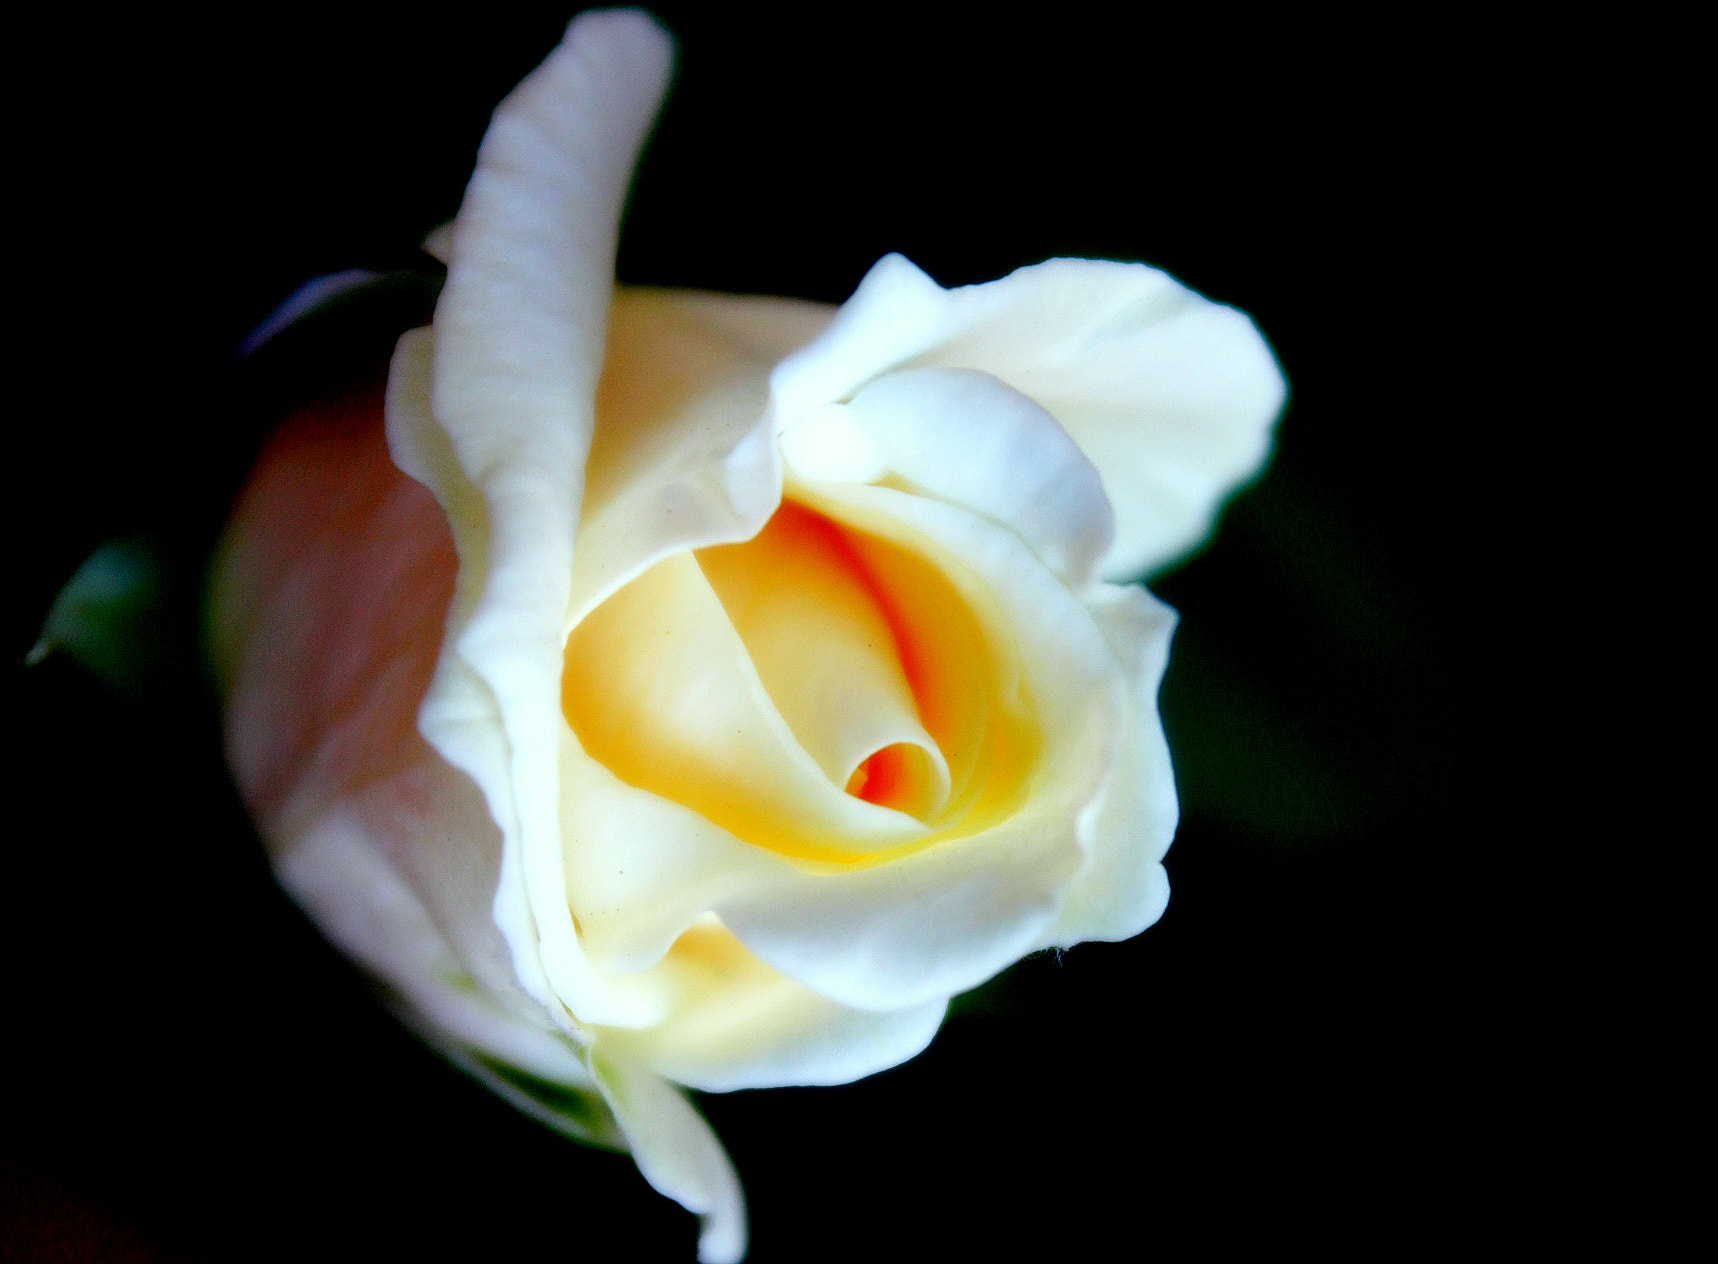 Photograph The Bud by Manaswinee Mohanty on 500px